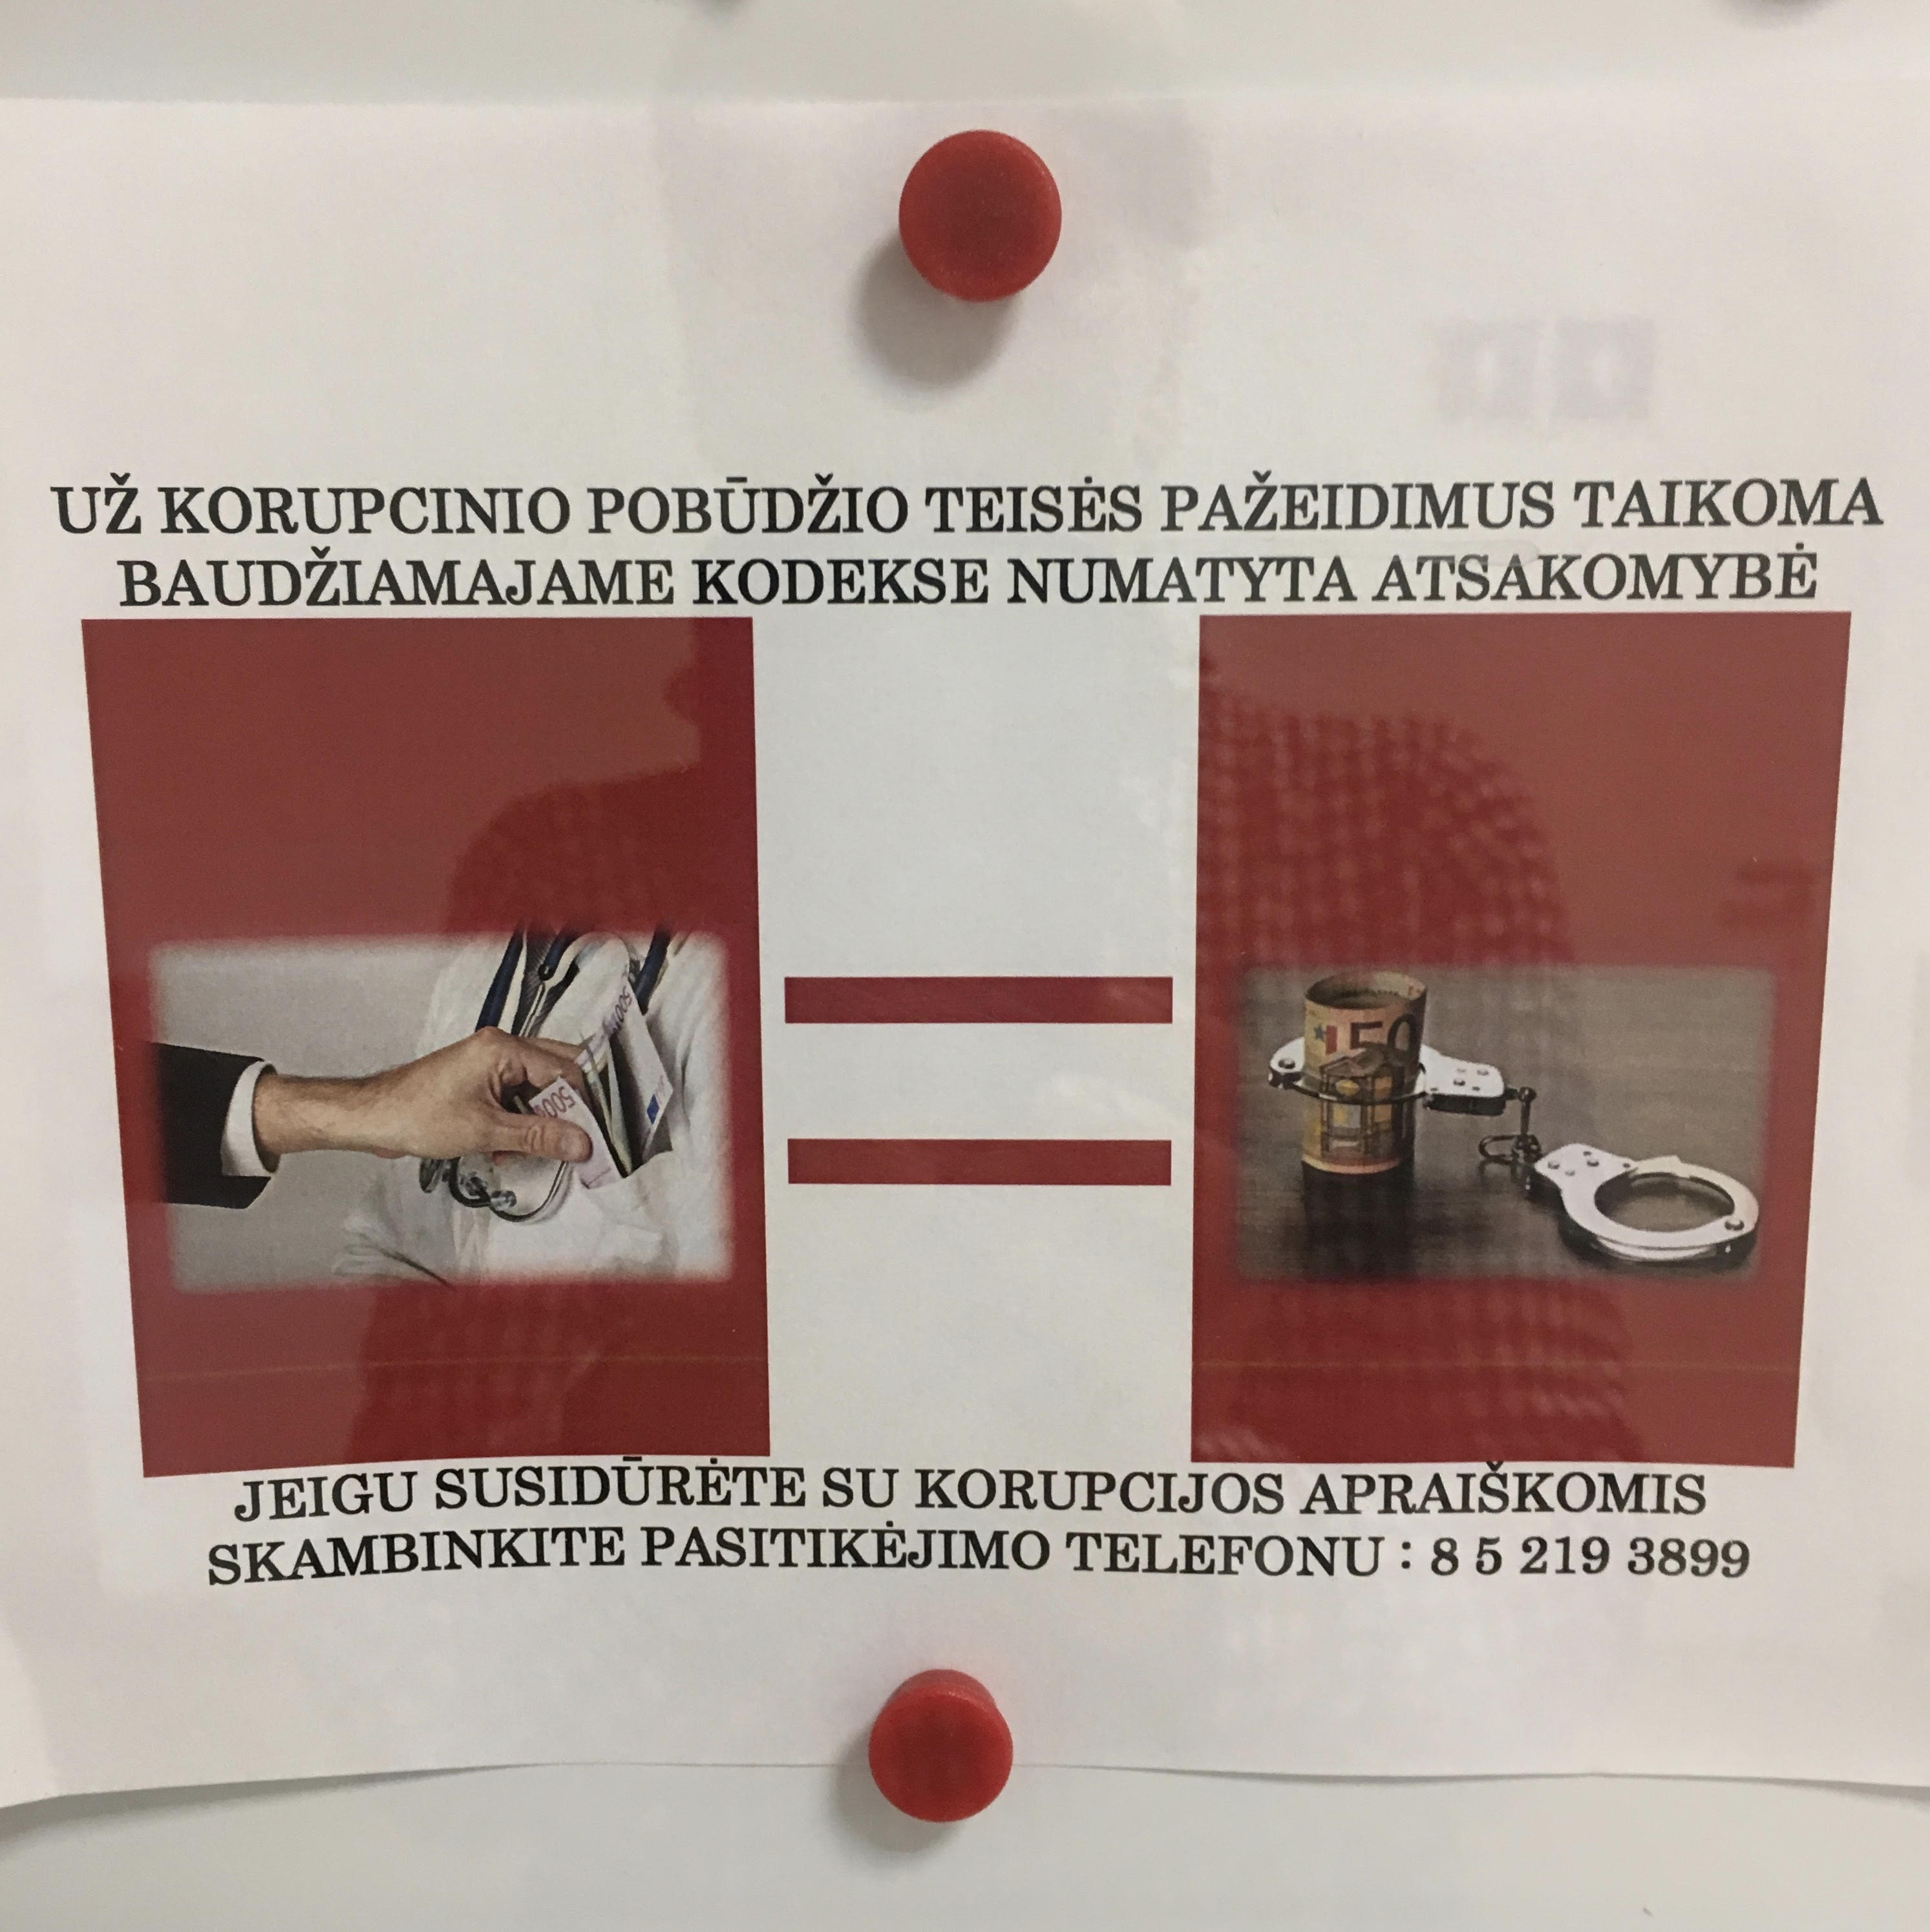 """Photo was taken in Vilnius in 2017. """"Corruption is a crime prosecuted by the Code of Criminal Procedure. If you encountered any signs of corruption, please call this trusted line. """""""